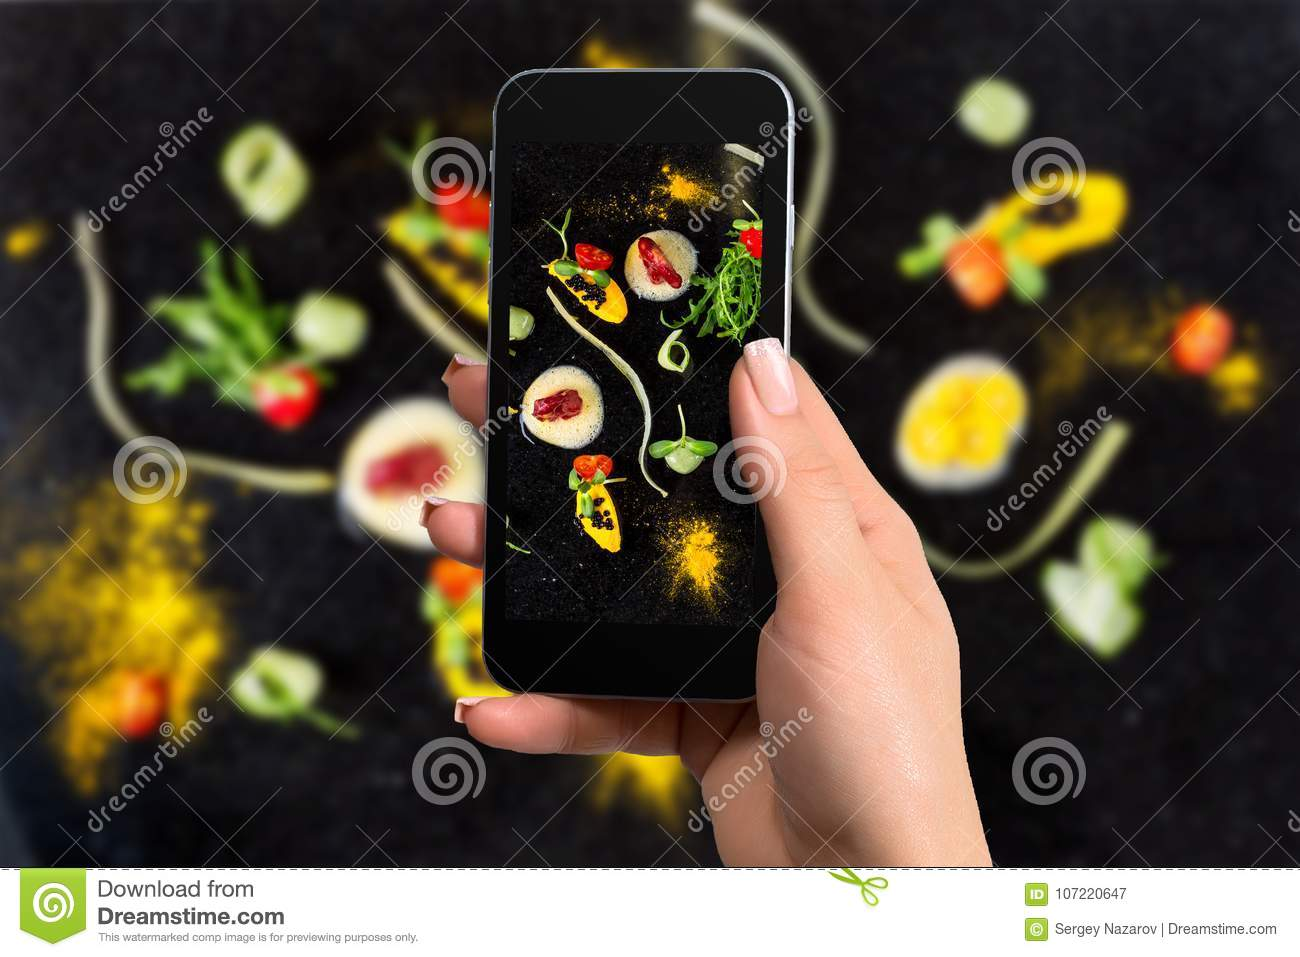 Closely image of female hands holding mobile phone with photo camera mode on the screen abstract gastronomy vanguard